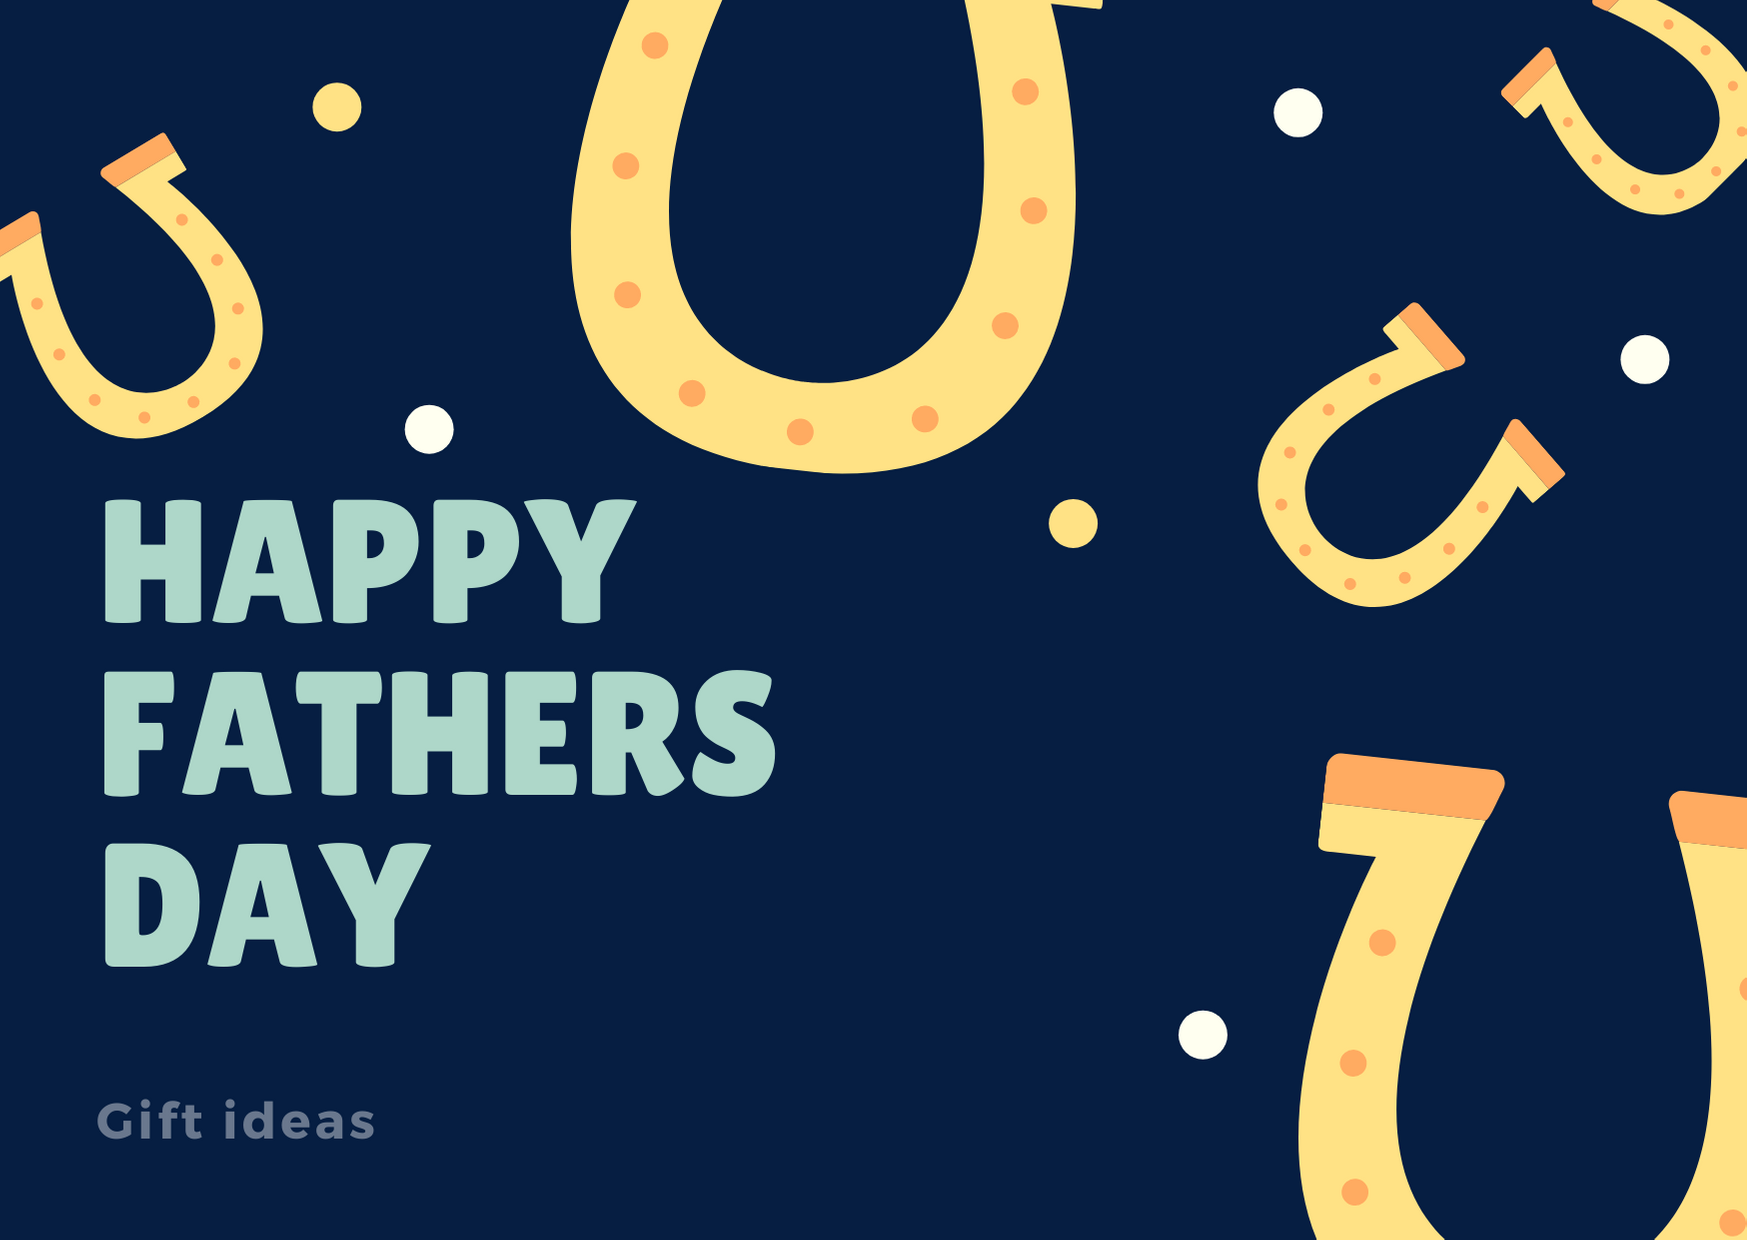 Father's day: Gift ideas